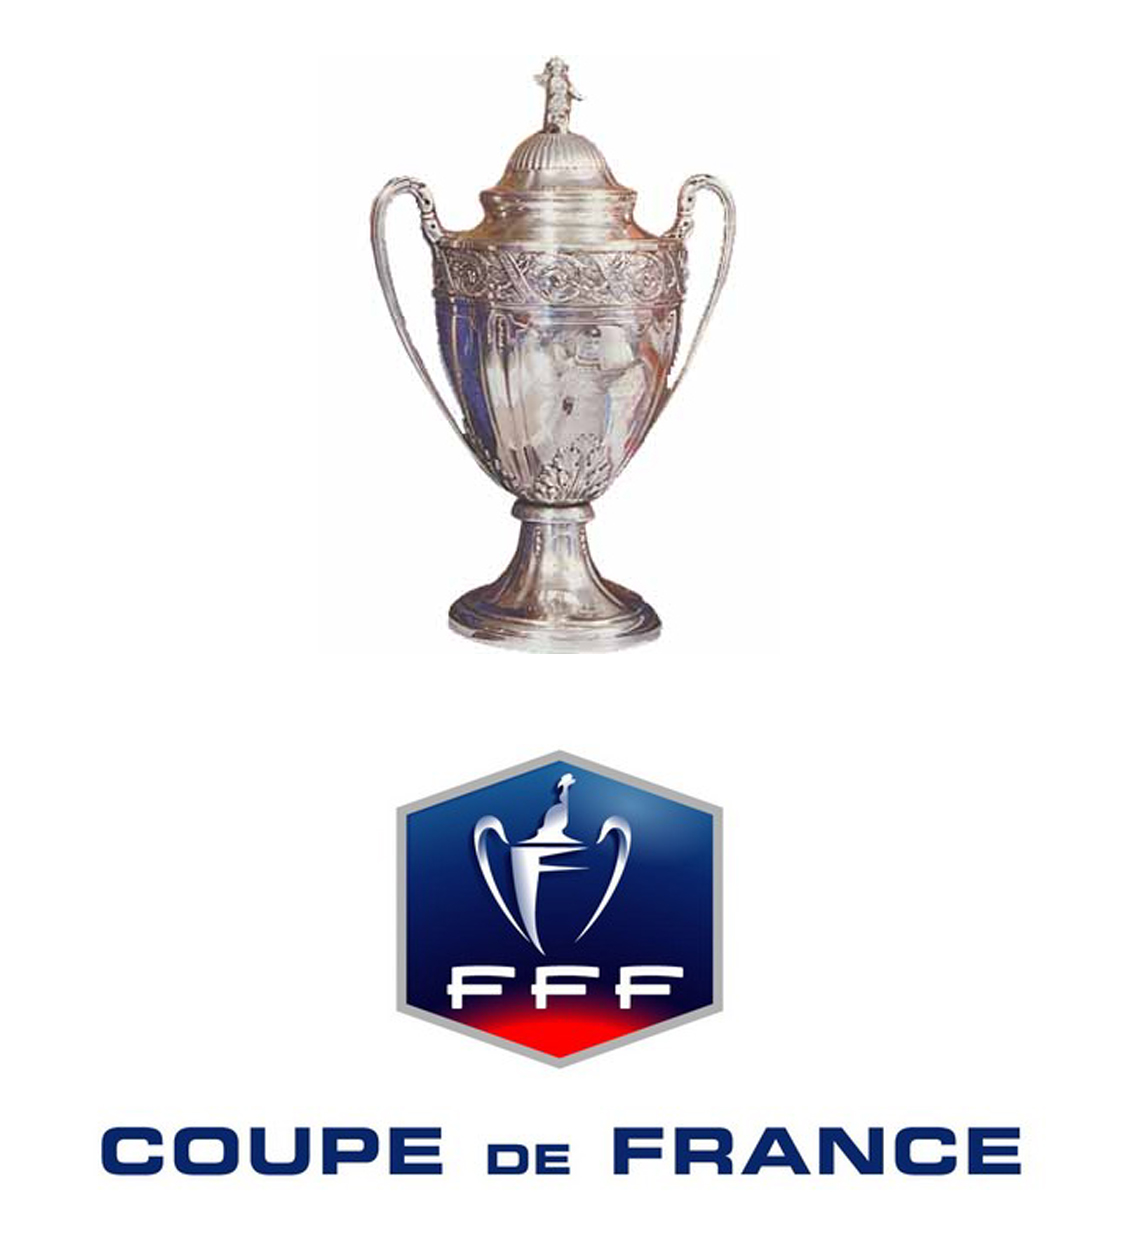 Actualit tirage de la coupe de france club football salanca football club footeo - Coupe de france en direct france 2 ...